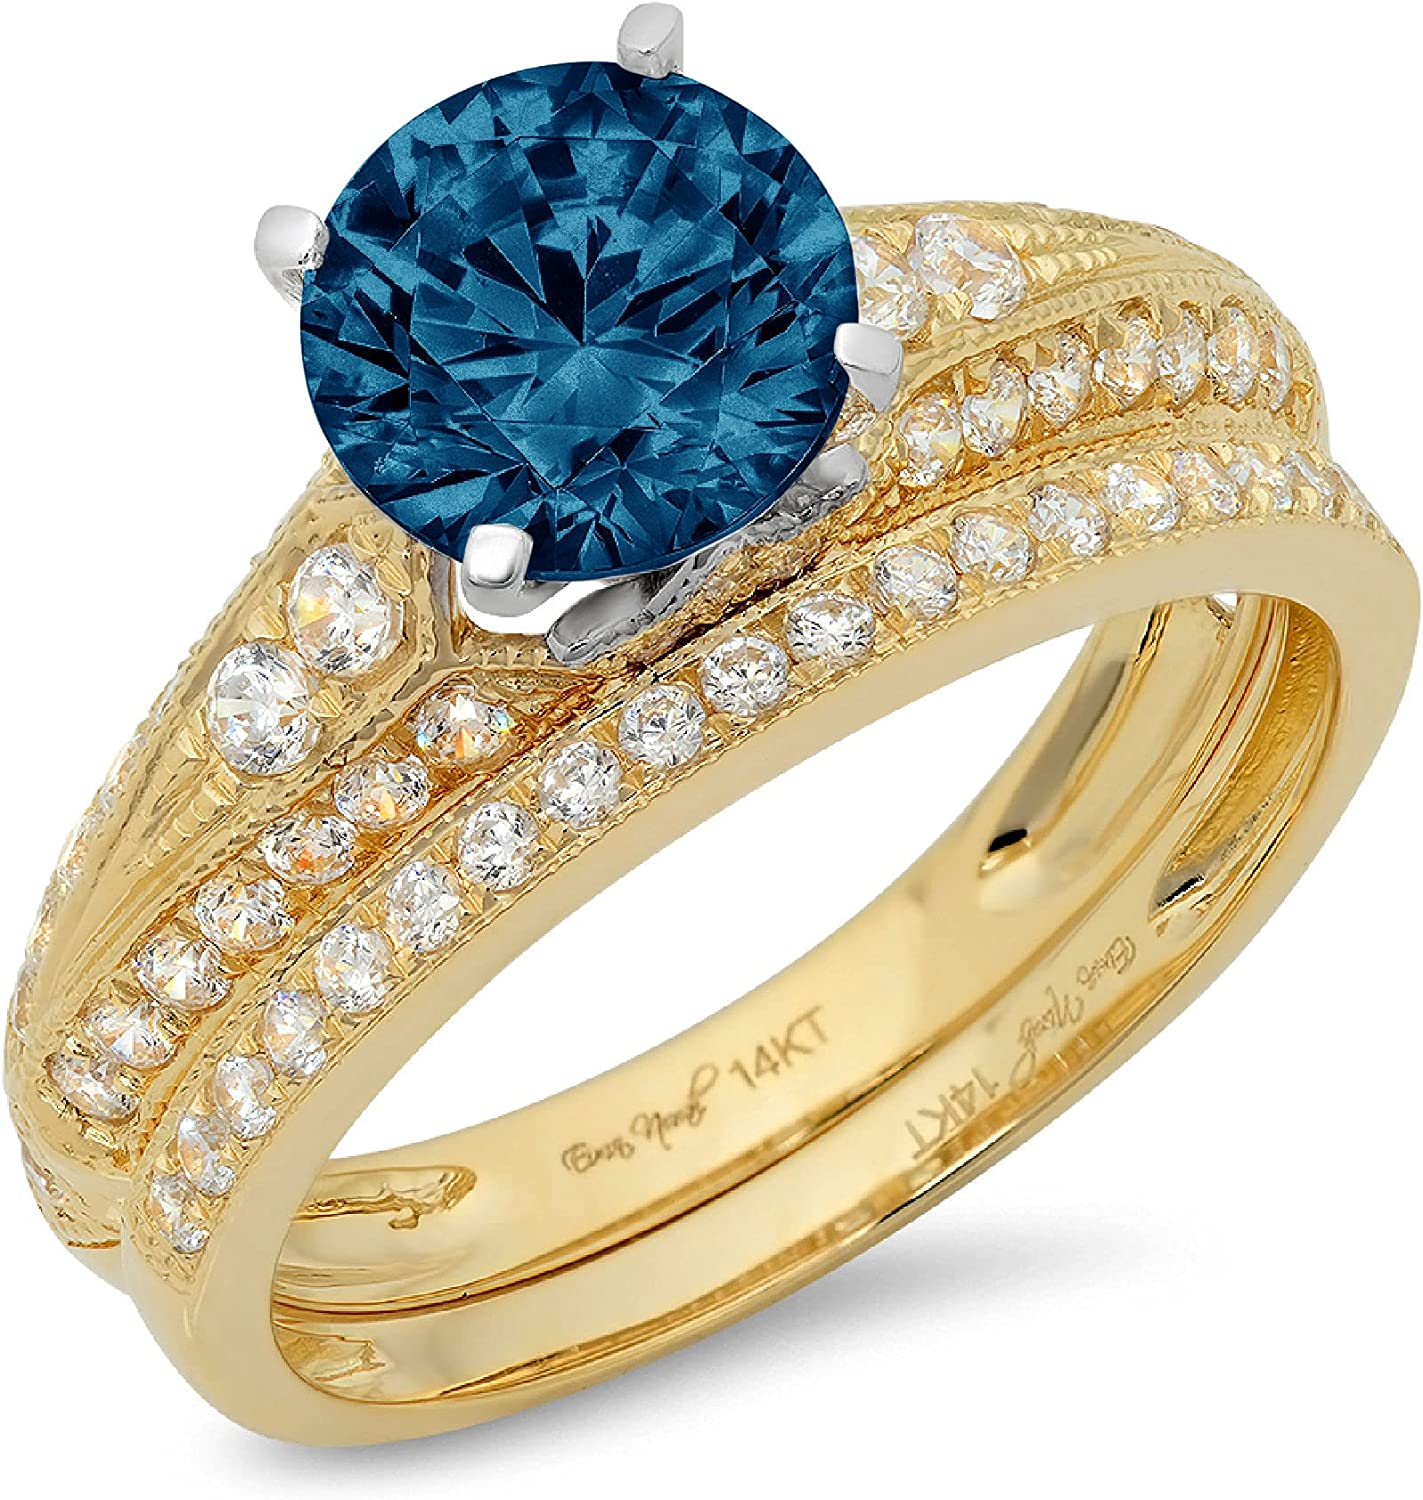 2.2 ct Round Cut Pave Solitaire with Accent Genuine Flawless Natural London Blue Topaz Designer Statement Classic Engagement Bridal Ring Band wedding Set Solid 18K 2 Tone Gold